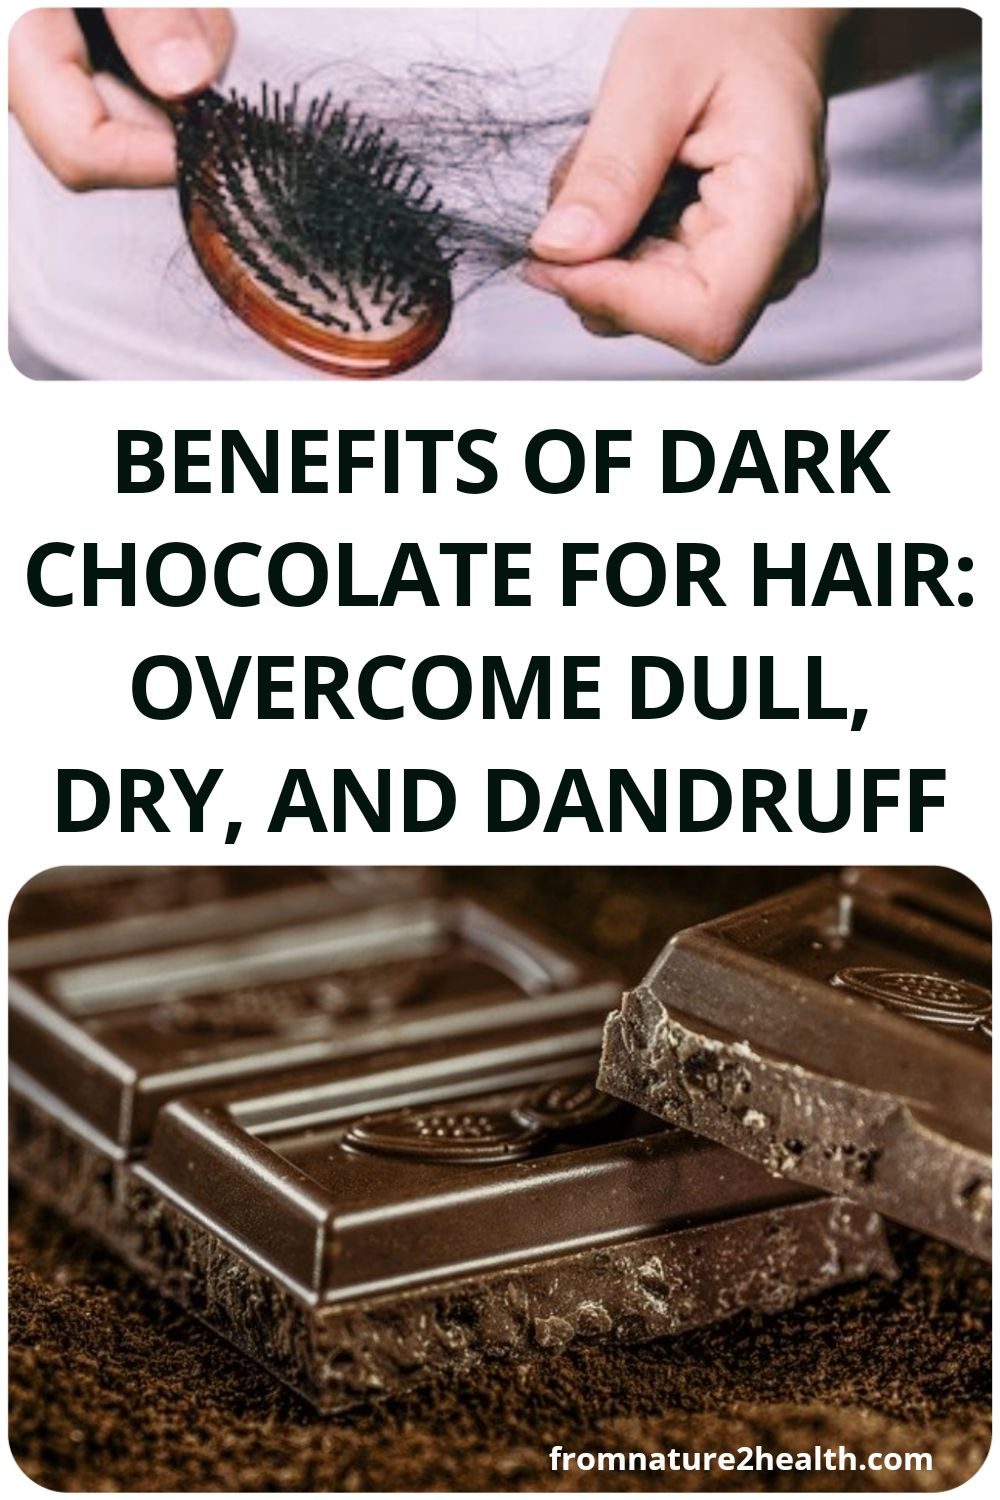 Benefits of Dark Chocolate for Hair: Overcome Dull, Dry, and Dandruff